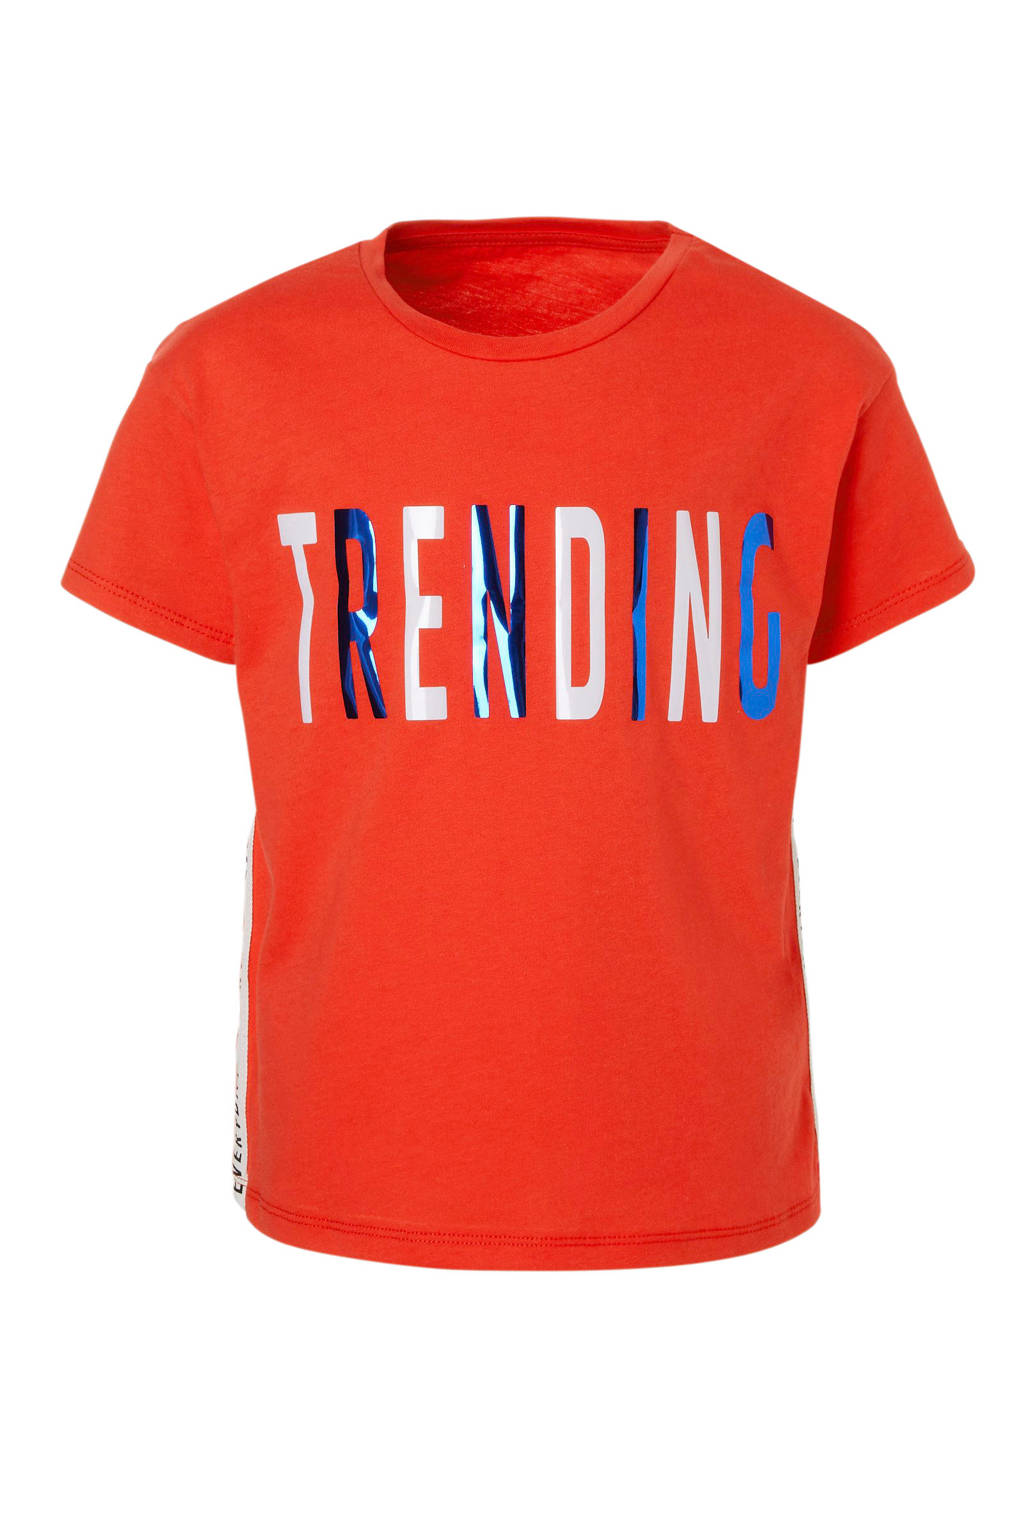 C&A Here & There kort T-shirt met glanzende tekst rood, Rood